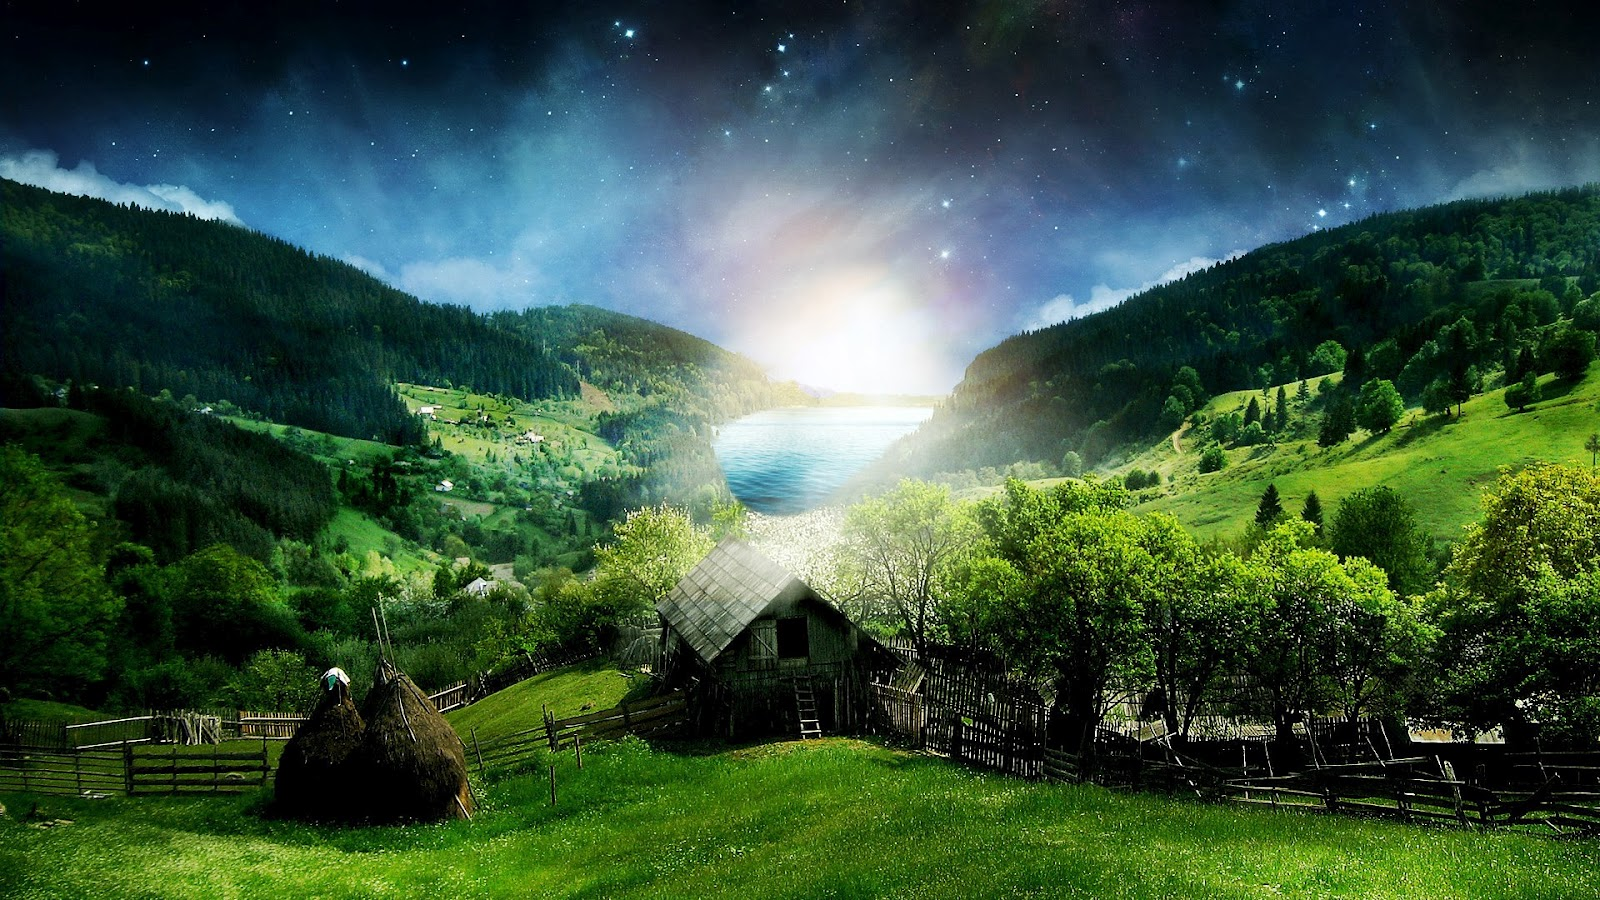 http://4.bp.blogspot.com/-CPNrjtSDvXE/T61iQprjf6I/AAAAAAAAAgk/_L01RTULvsA/s1600/supper-hd-nature-widesreen-wallpaper-moonlight-1920x1080.jpg